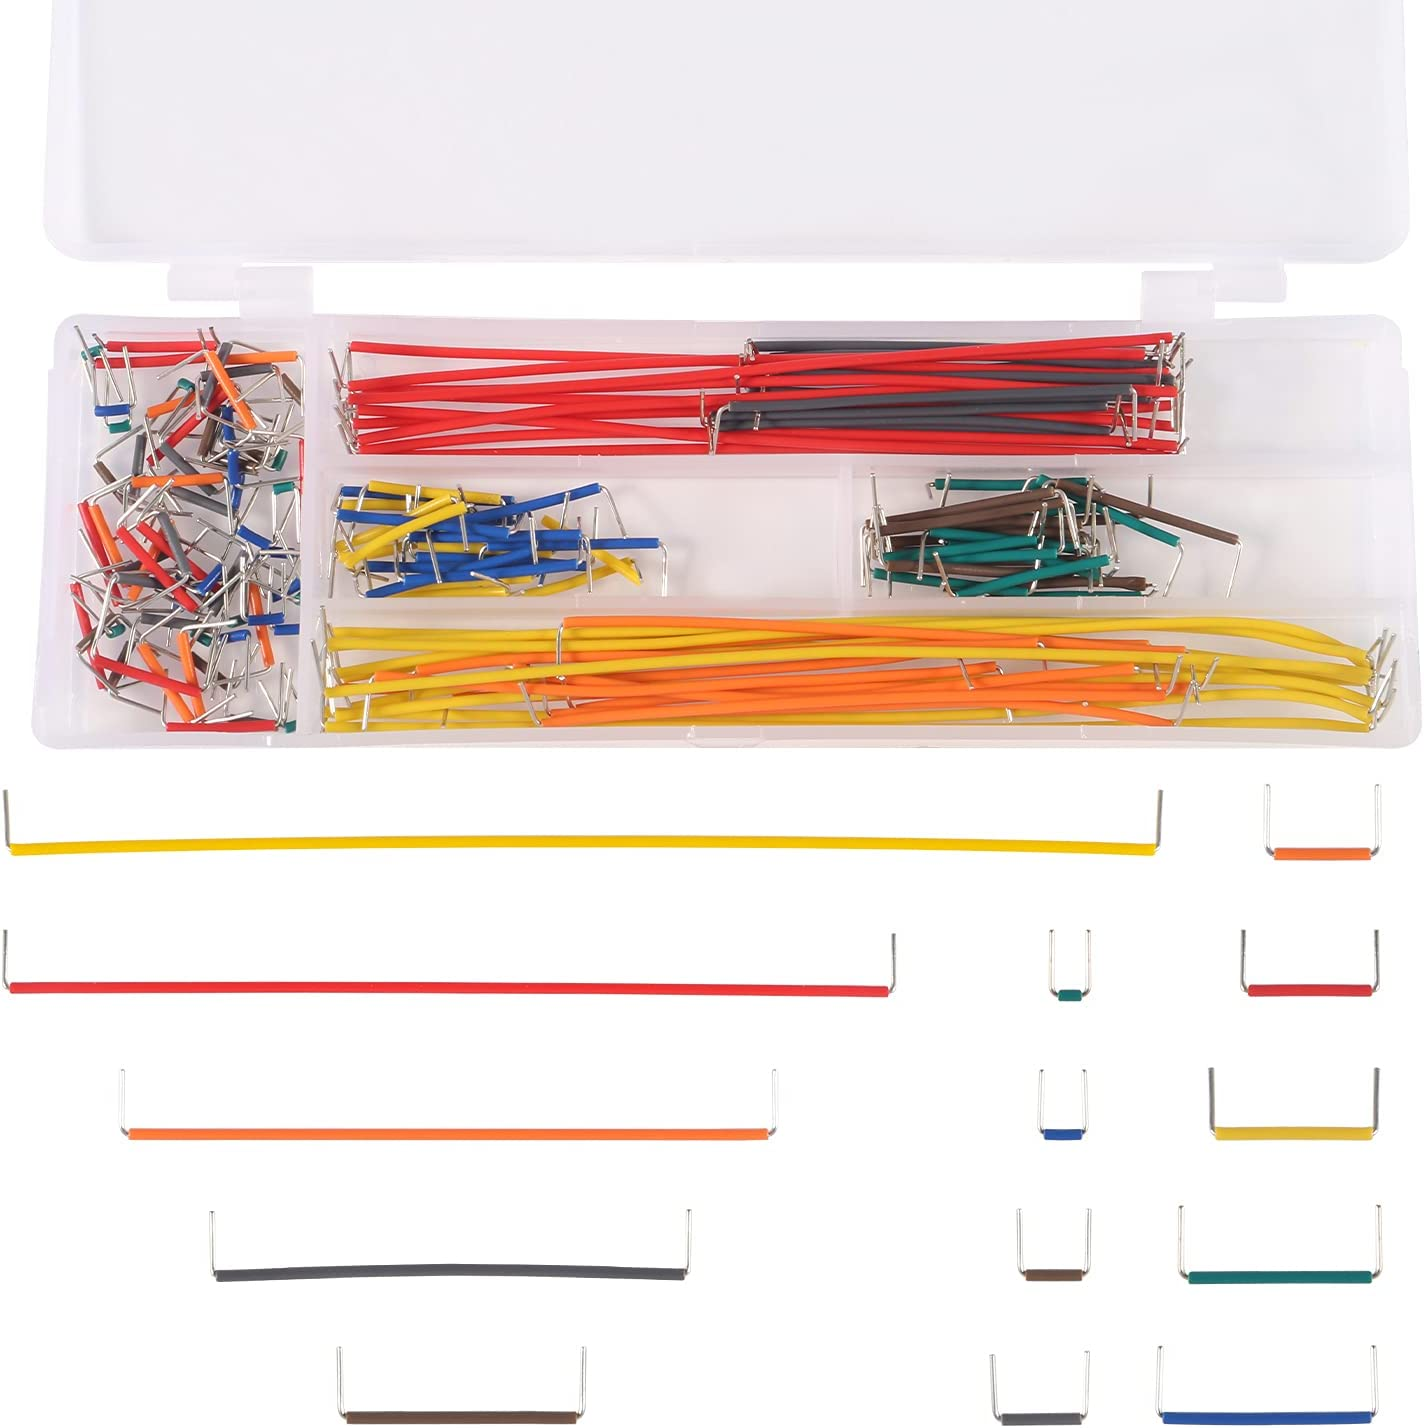 Aoicrie Jumper Wire Kit Preformed 140 Max 84% OFF Breadboard Luxury Pieces